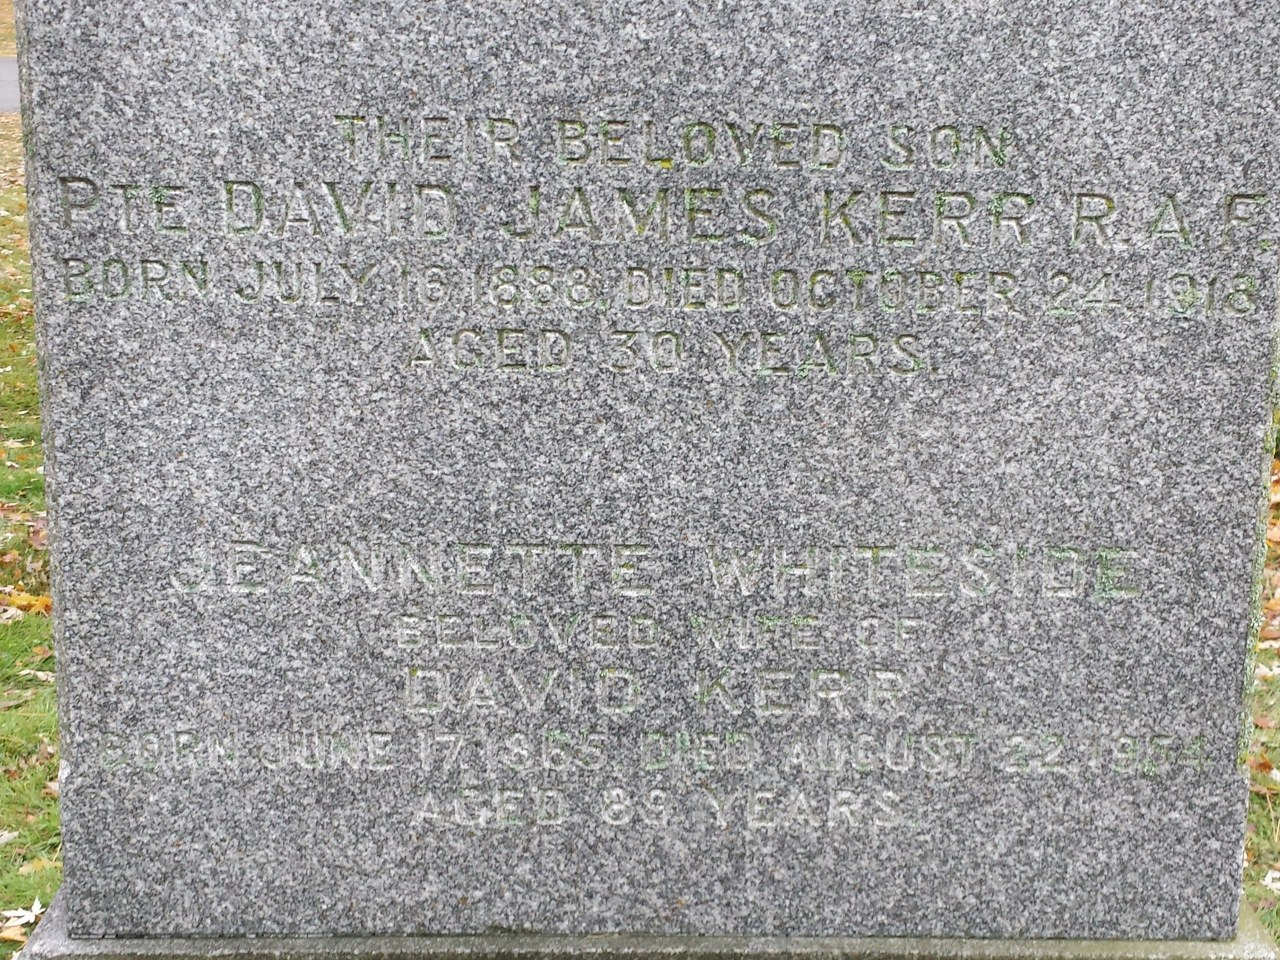 Headstone for David James Kerr, courtesy of Islington and FindaGrave.com